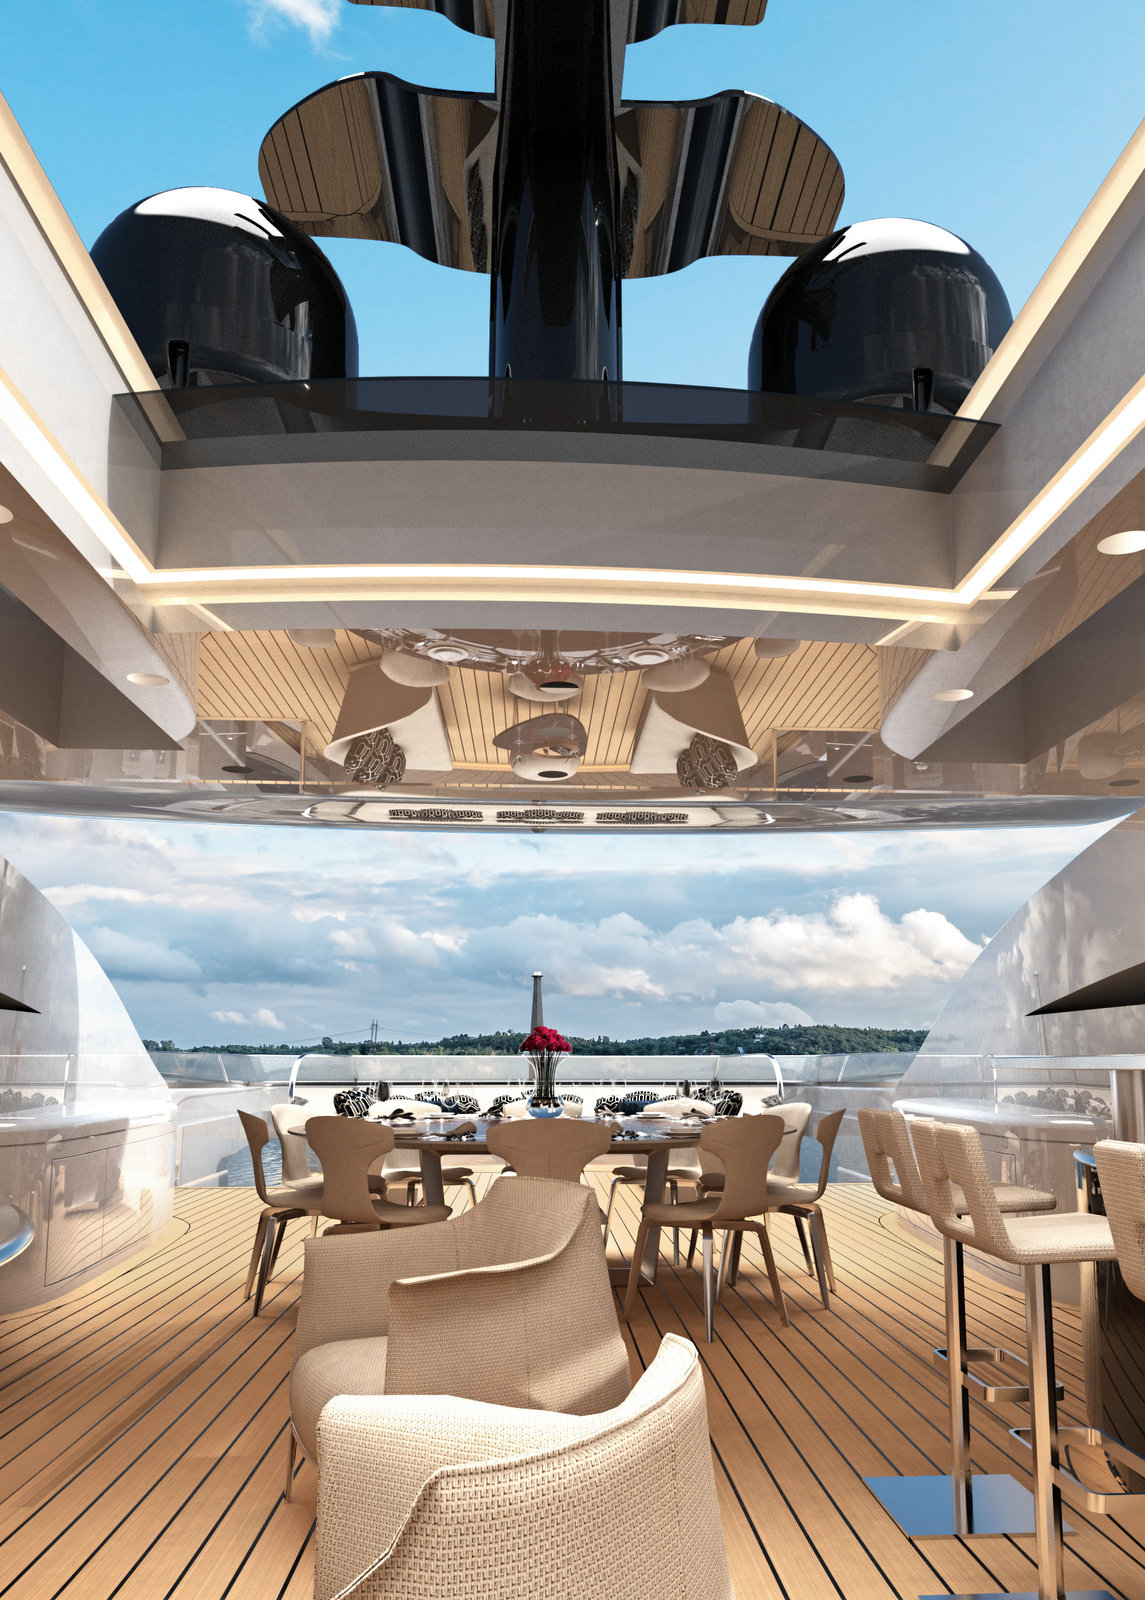 the-sundeck-of-the-rossinavi-superyacht-concept-zephyr